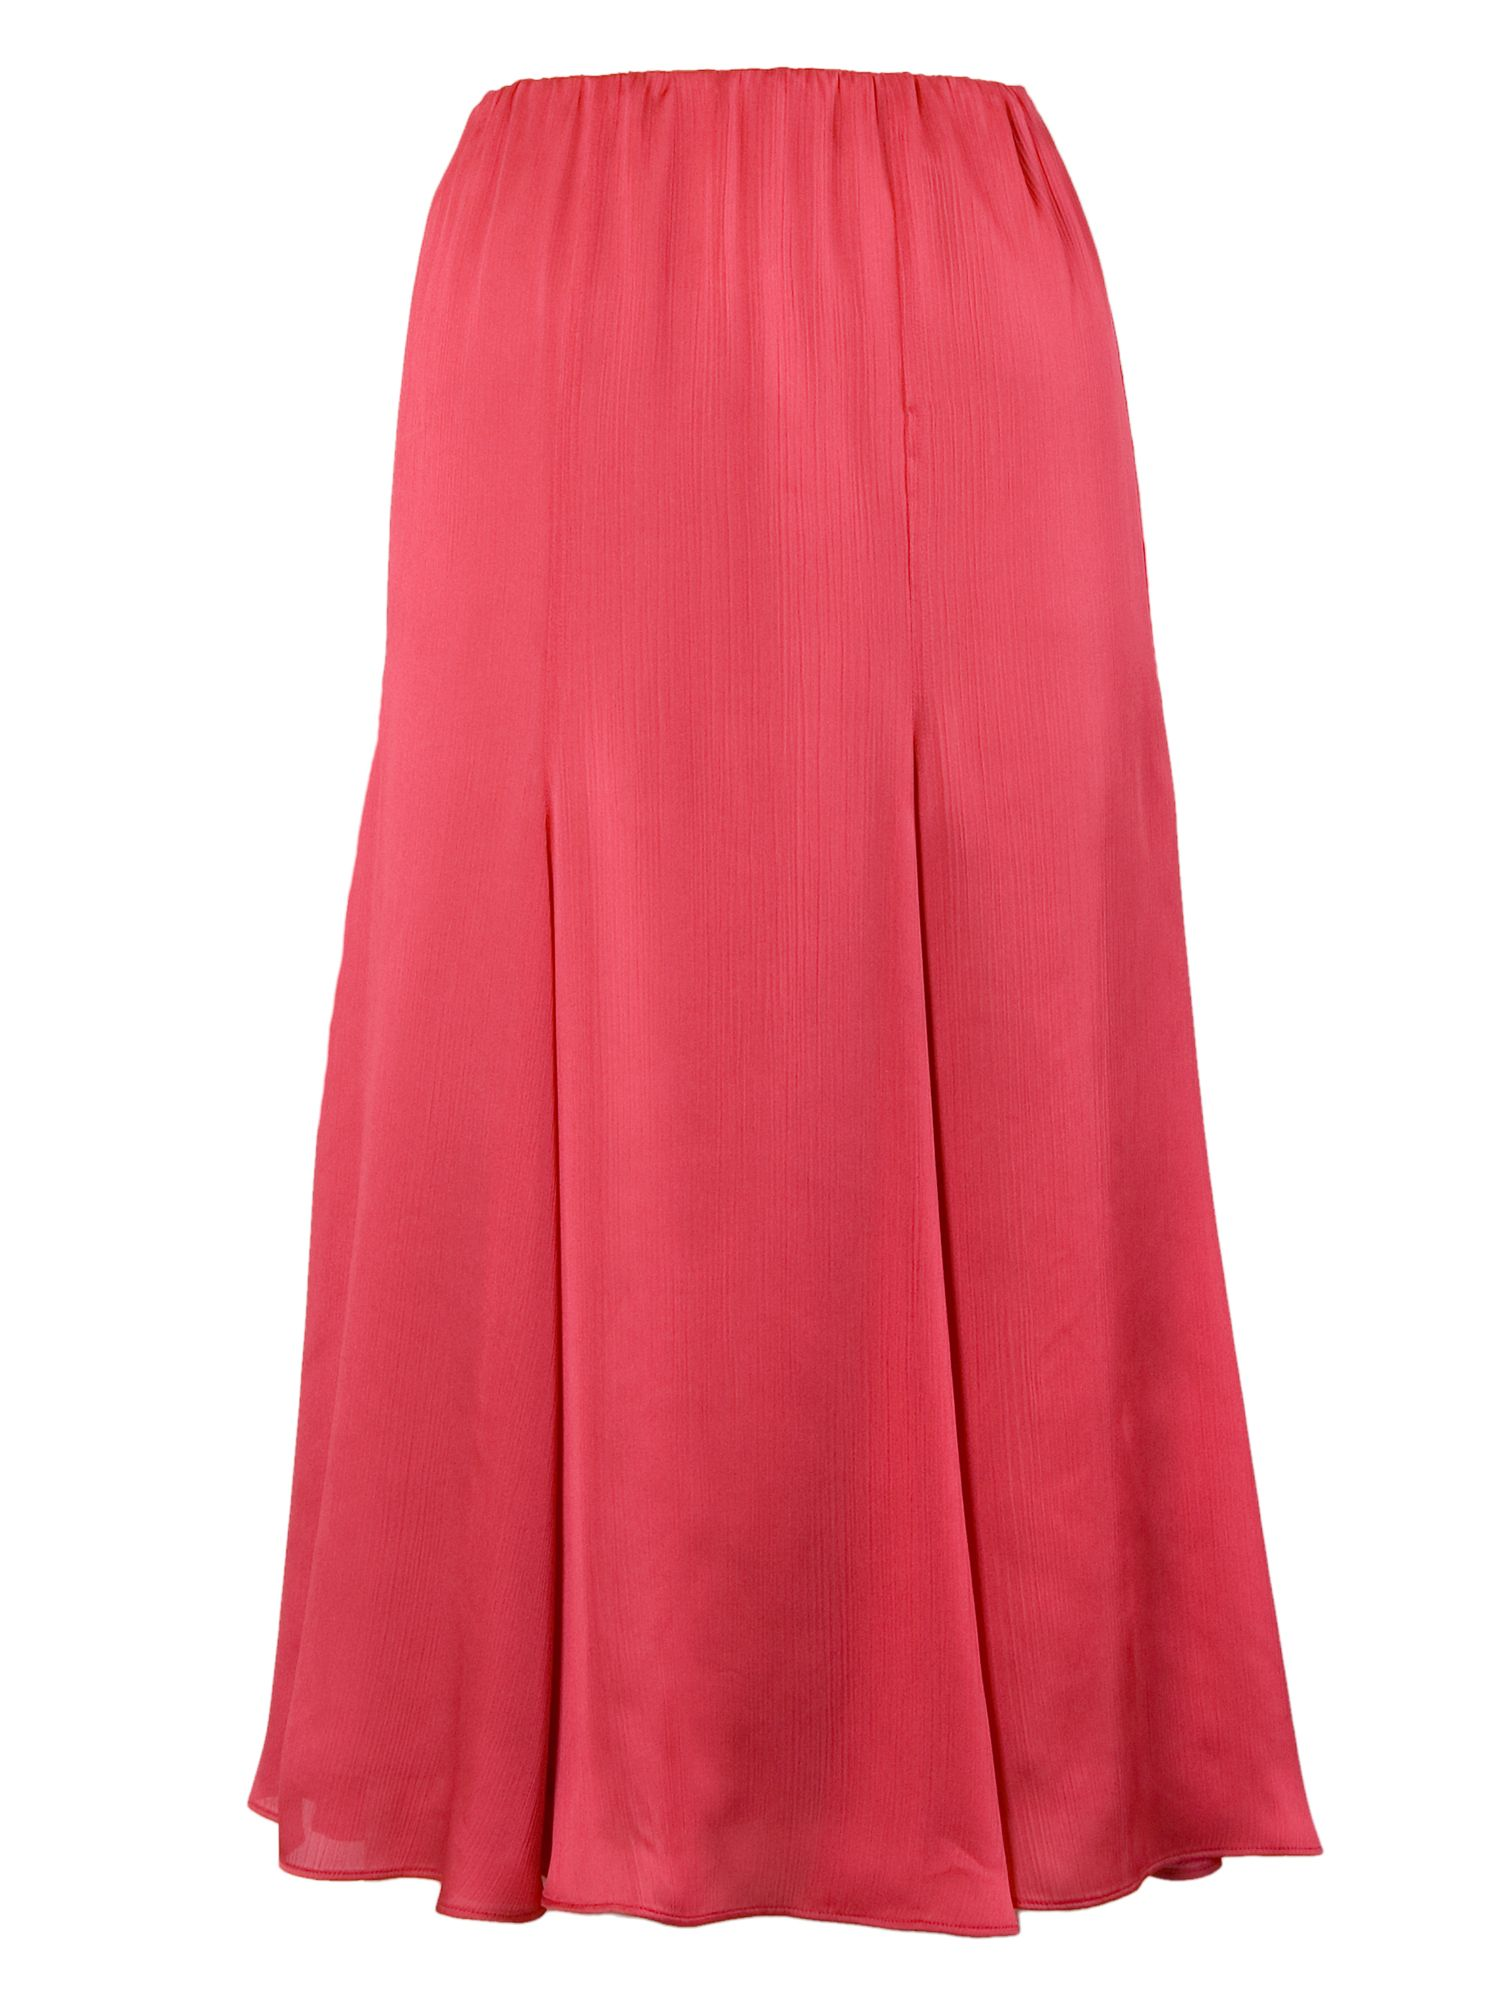 Chesca Multi Panel Flared Skirt, Coral